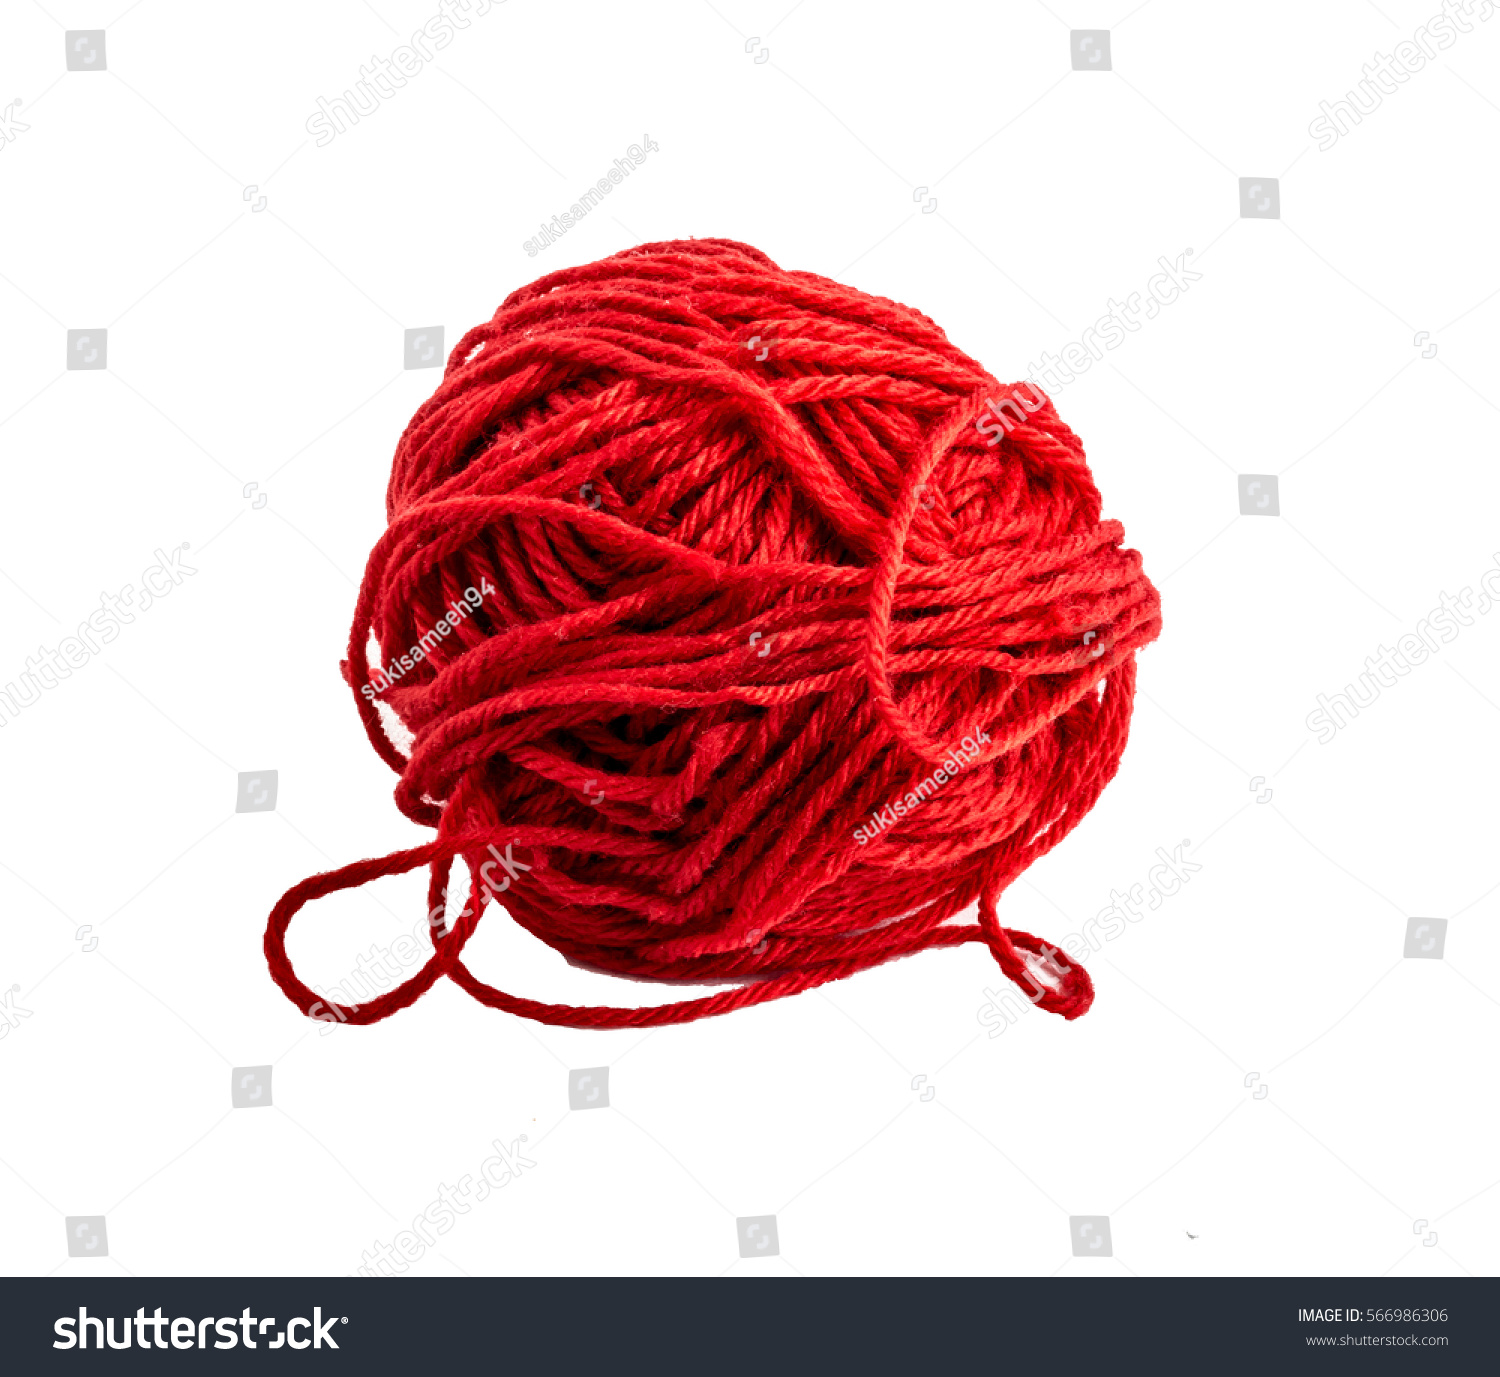 Red Ball Yarn Knitting Isolated On Stock Photo (100% Legal ...